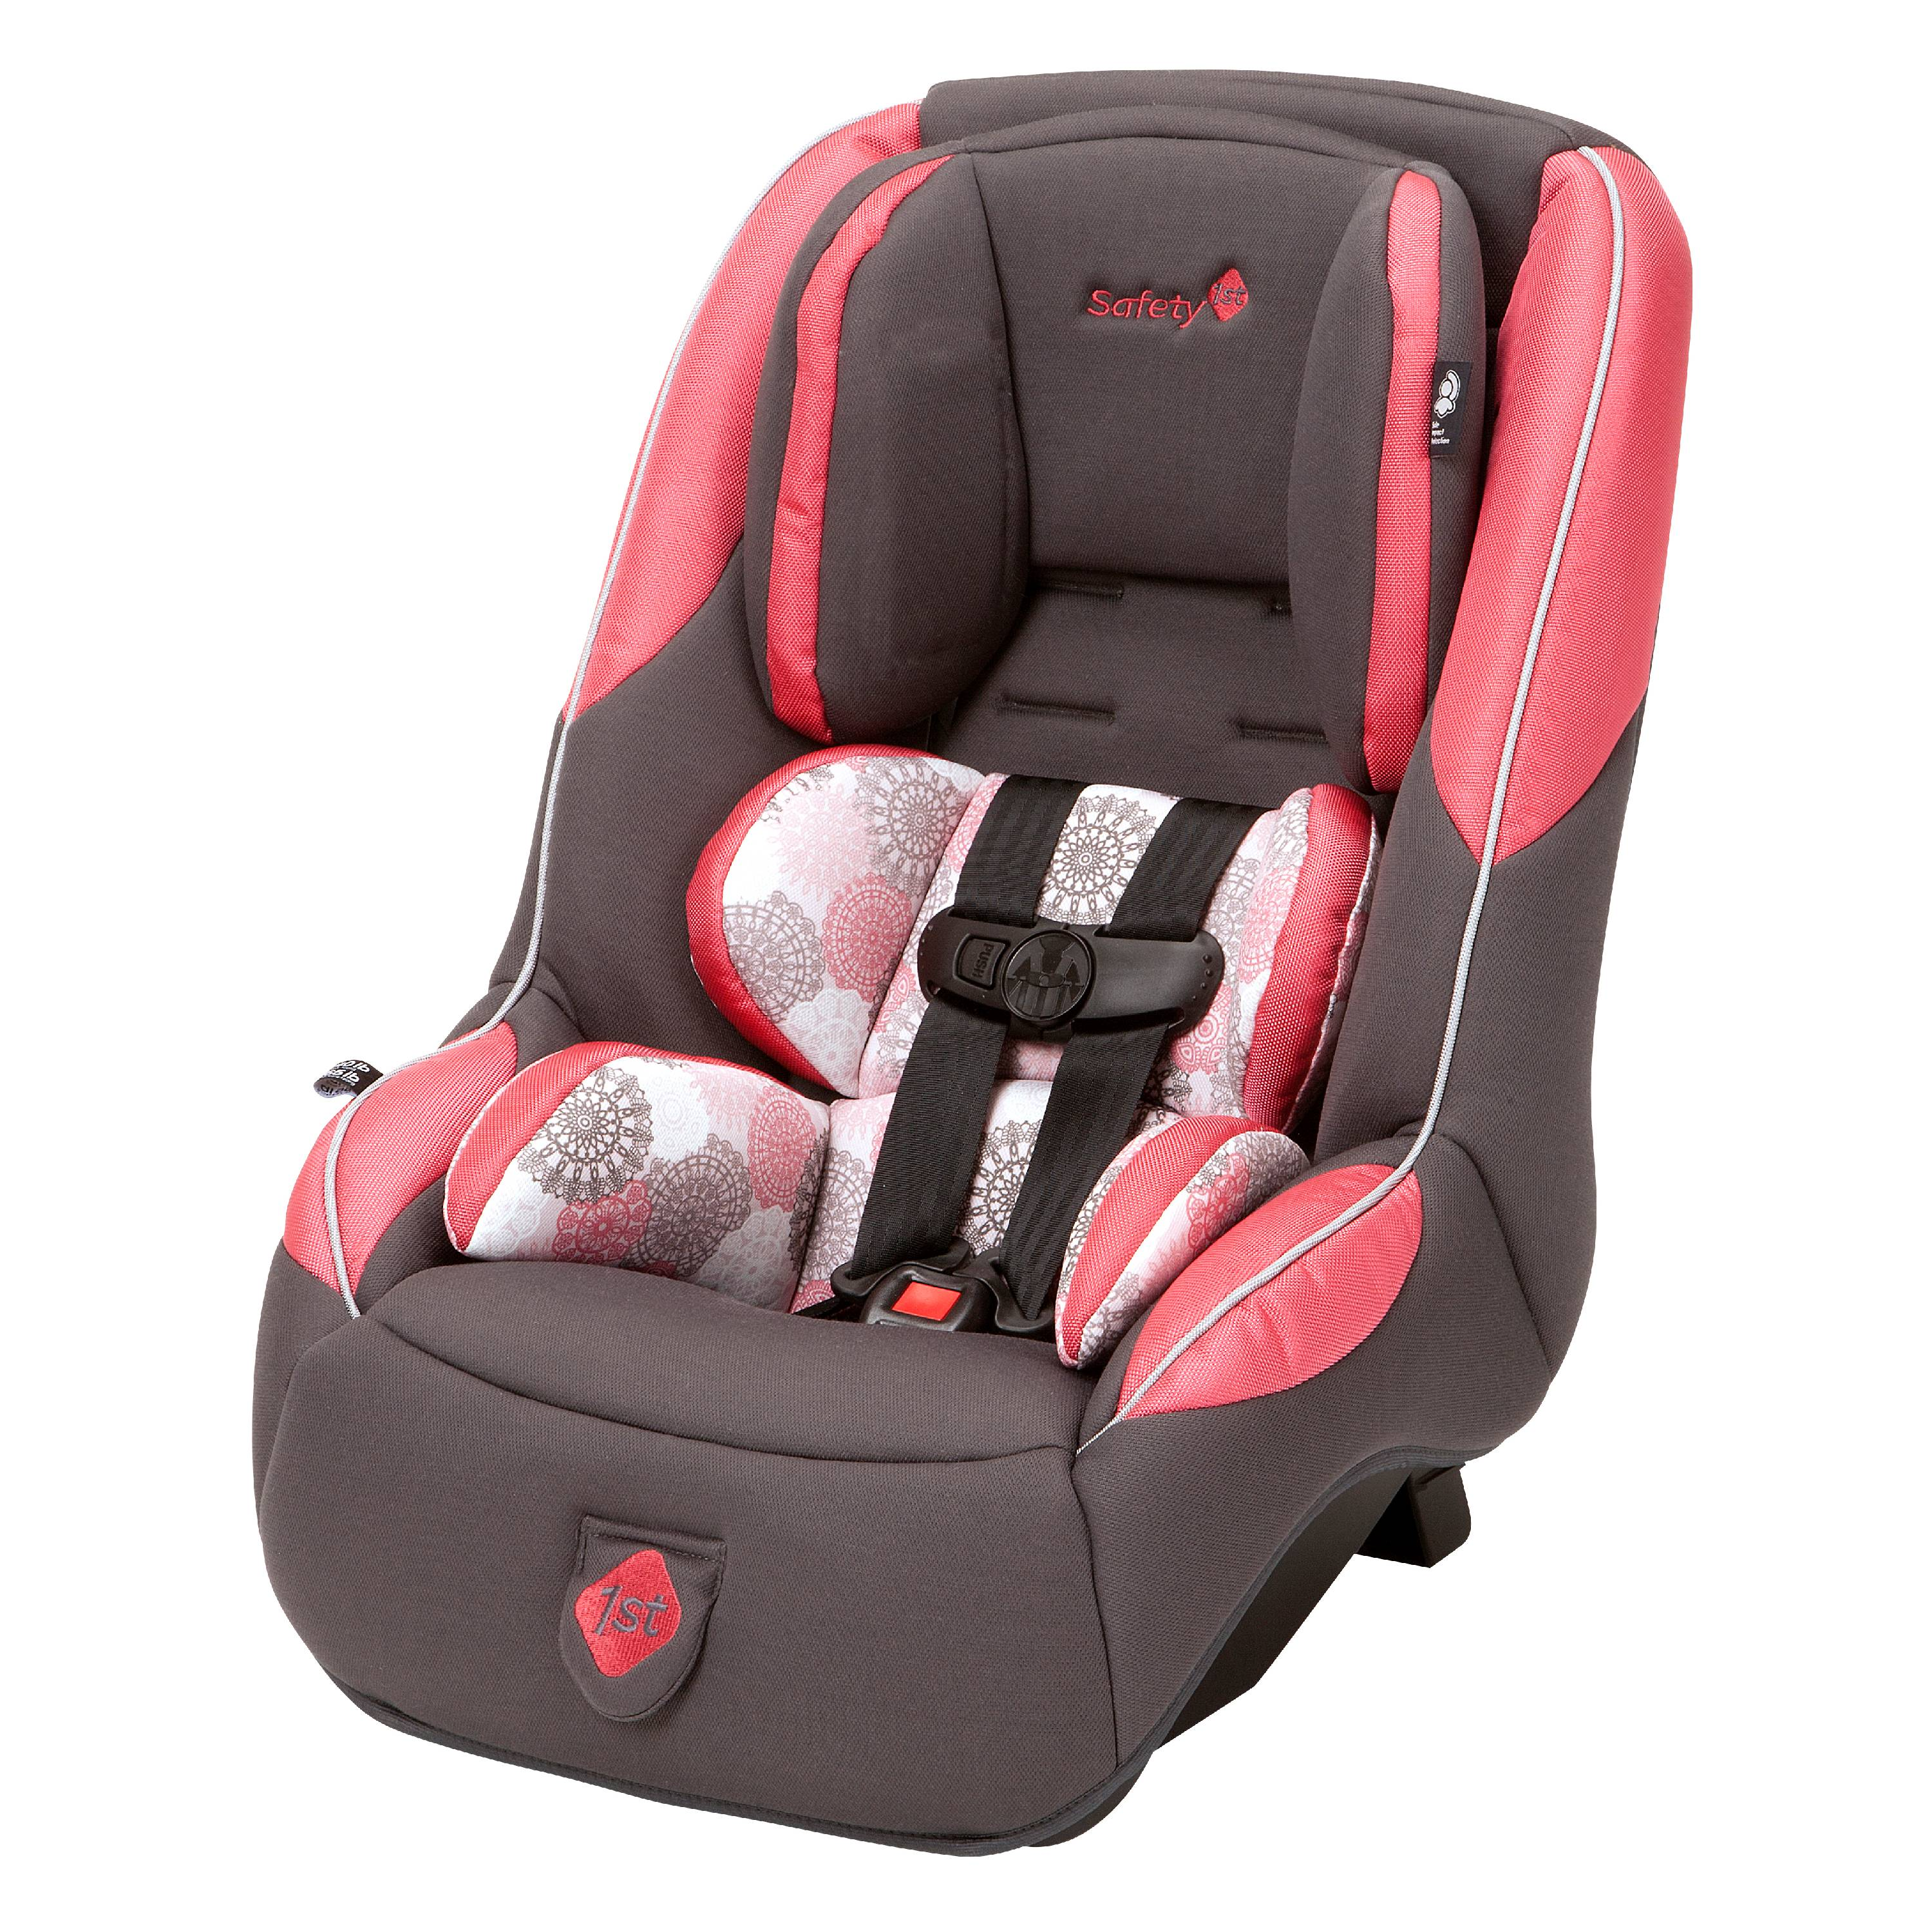 Safety 1st Guide 65 2-in-1 Convertible Car Seat, Chateau